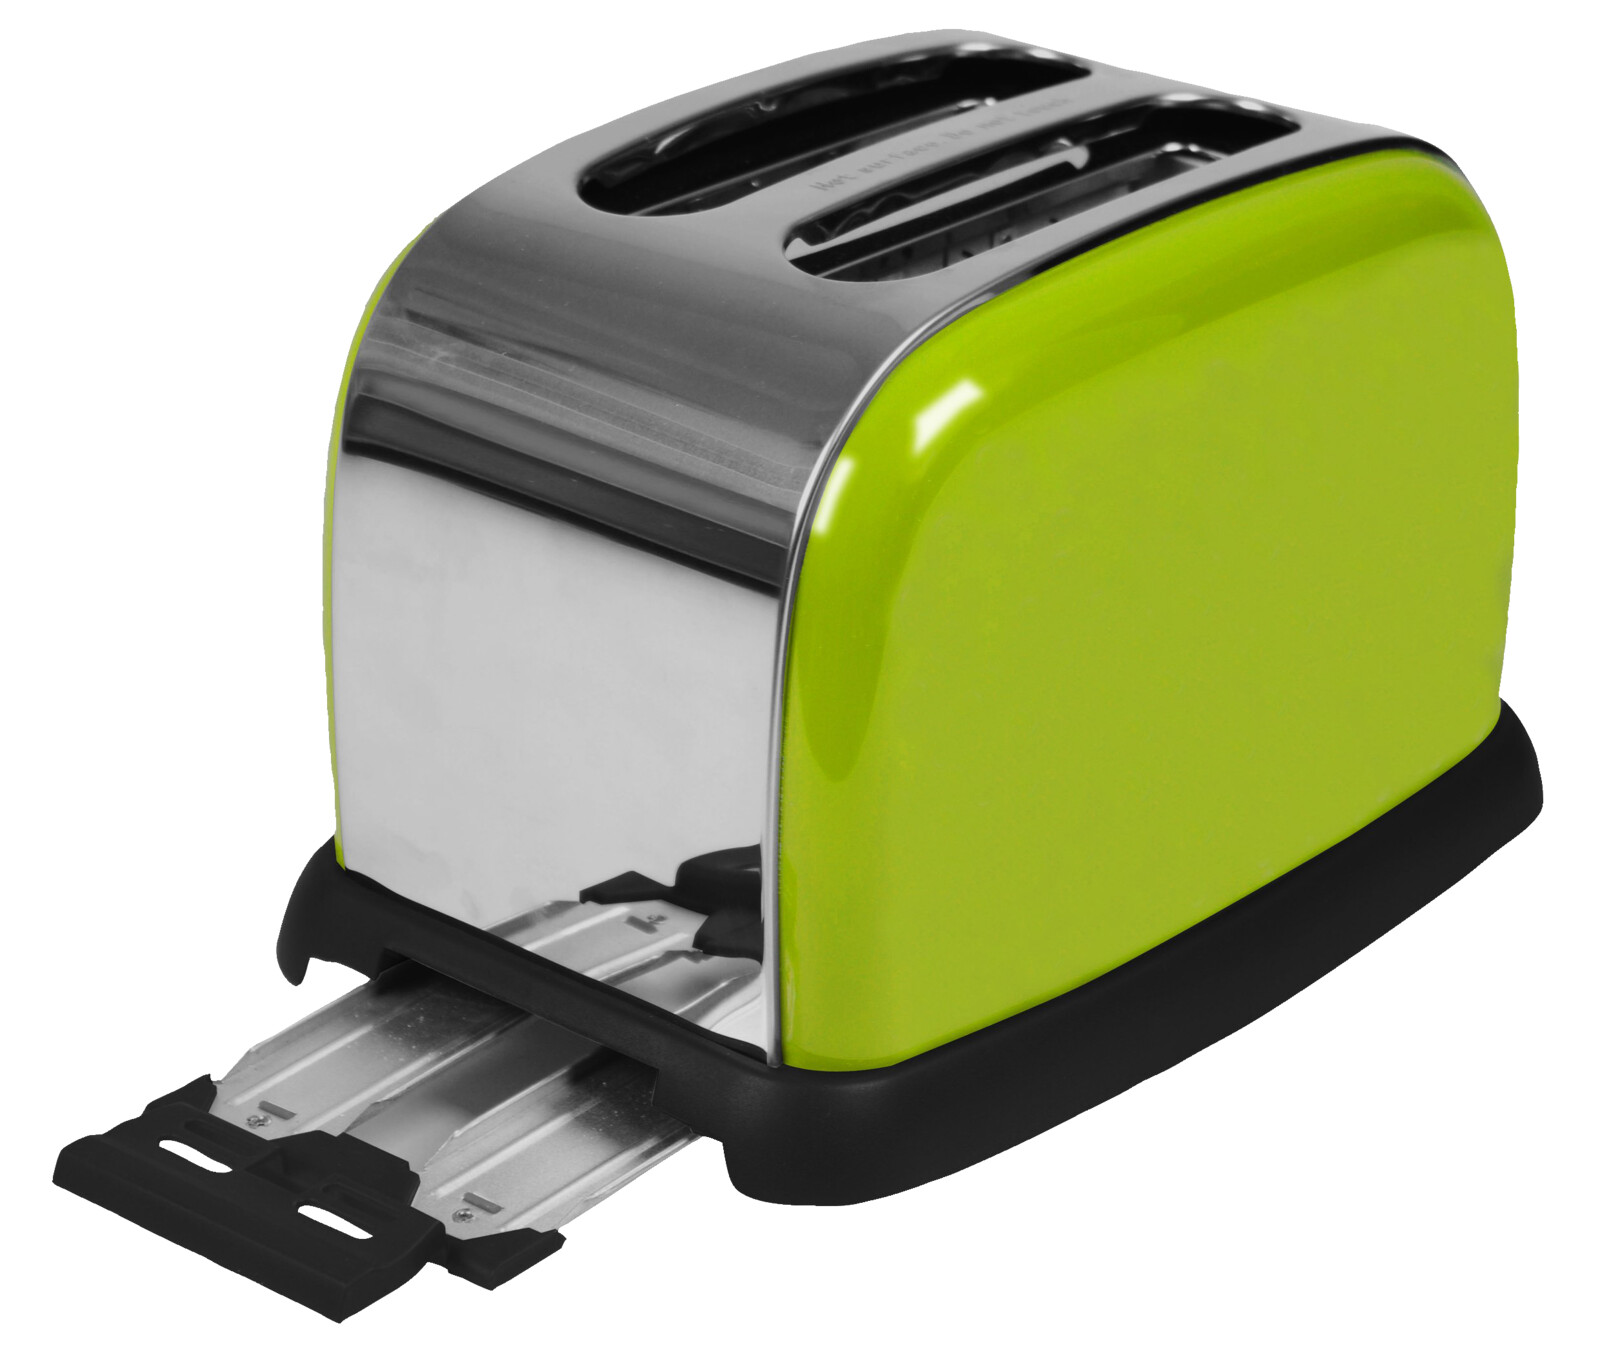 kalorik pdx qt reviews tabletop slow kitchen wayfair digital toaster cooker